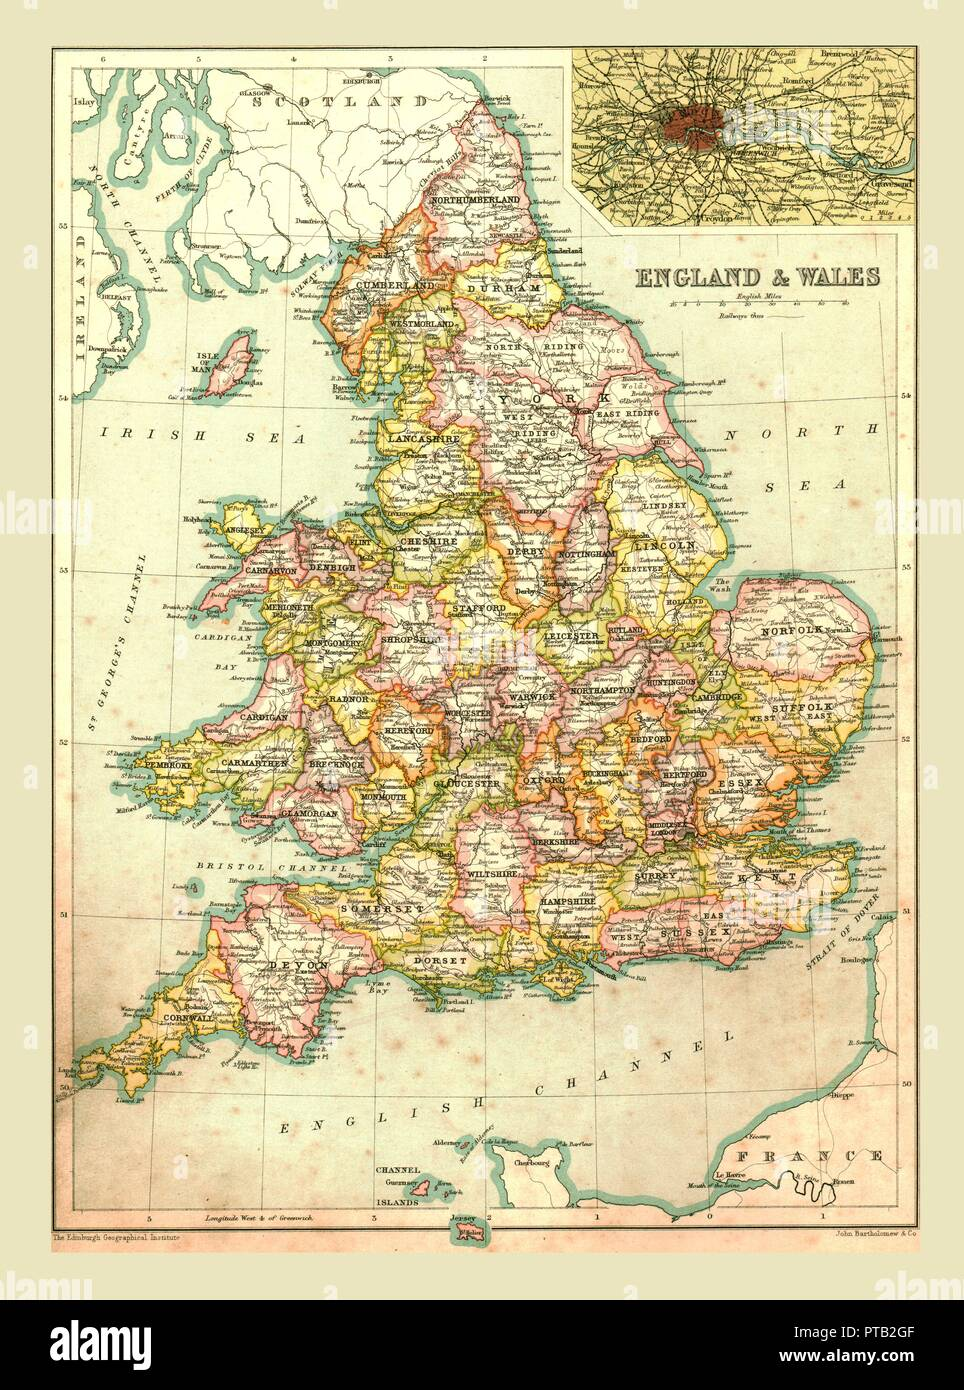 England Map Counties Stock Photos & England Map Counties Stock ... on